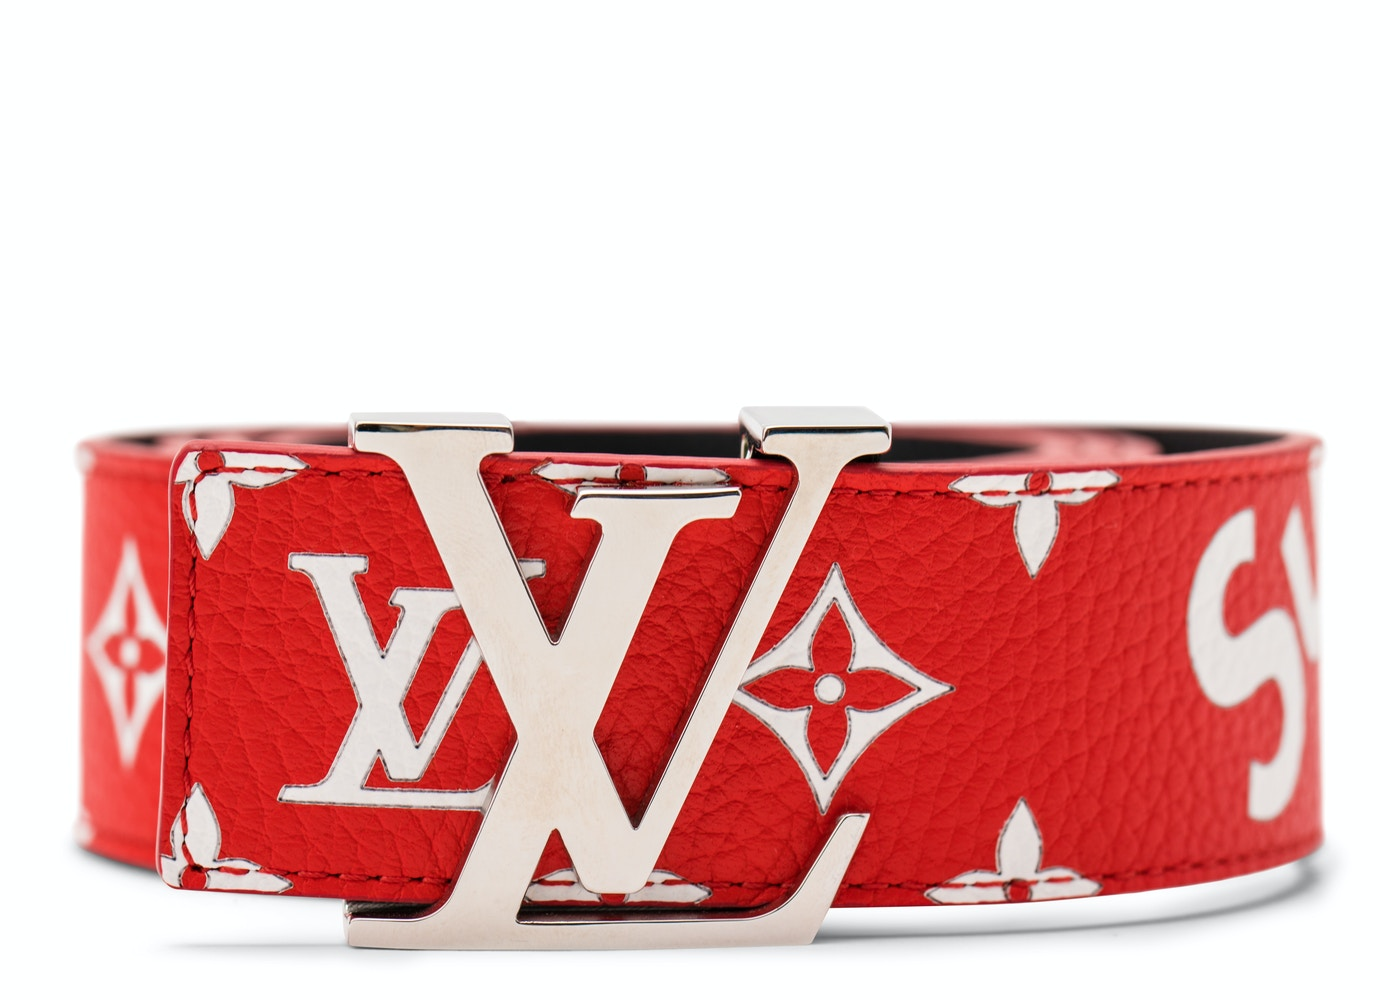 504fbbded2a6 Louis Vuitton x Supreme Initiales Belt 40 MM Monogram Red. 40 MM Monogram  Red